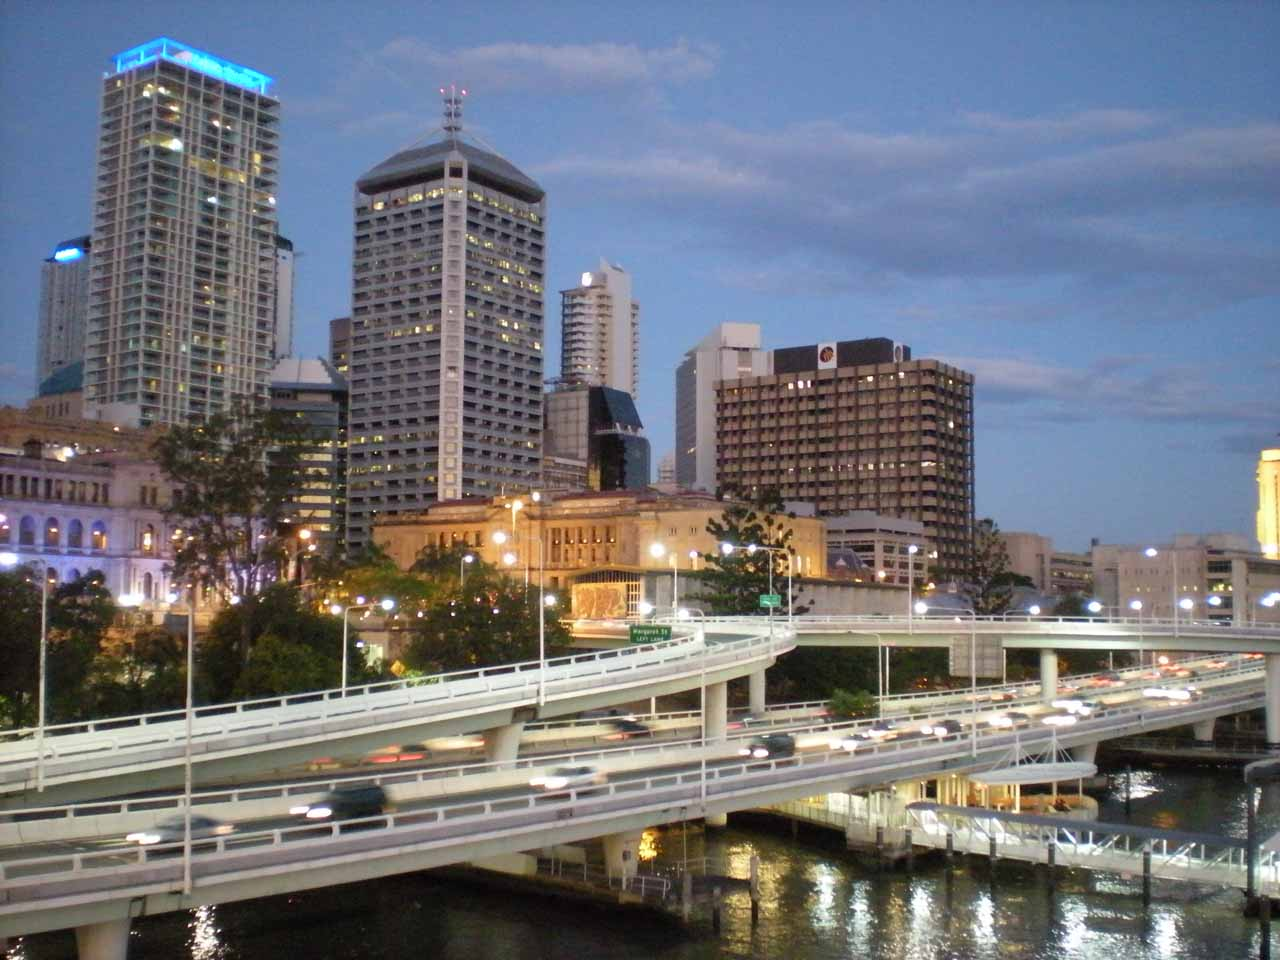 Perhaps it would have been more straightforward to come to Killarney from Brisbane, which was the main city of Queensland